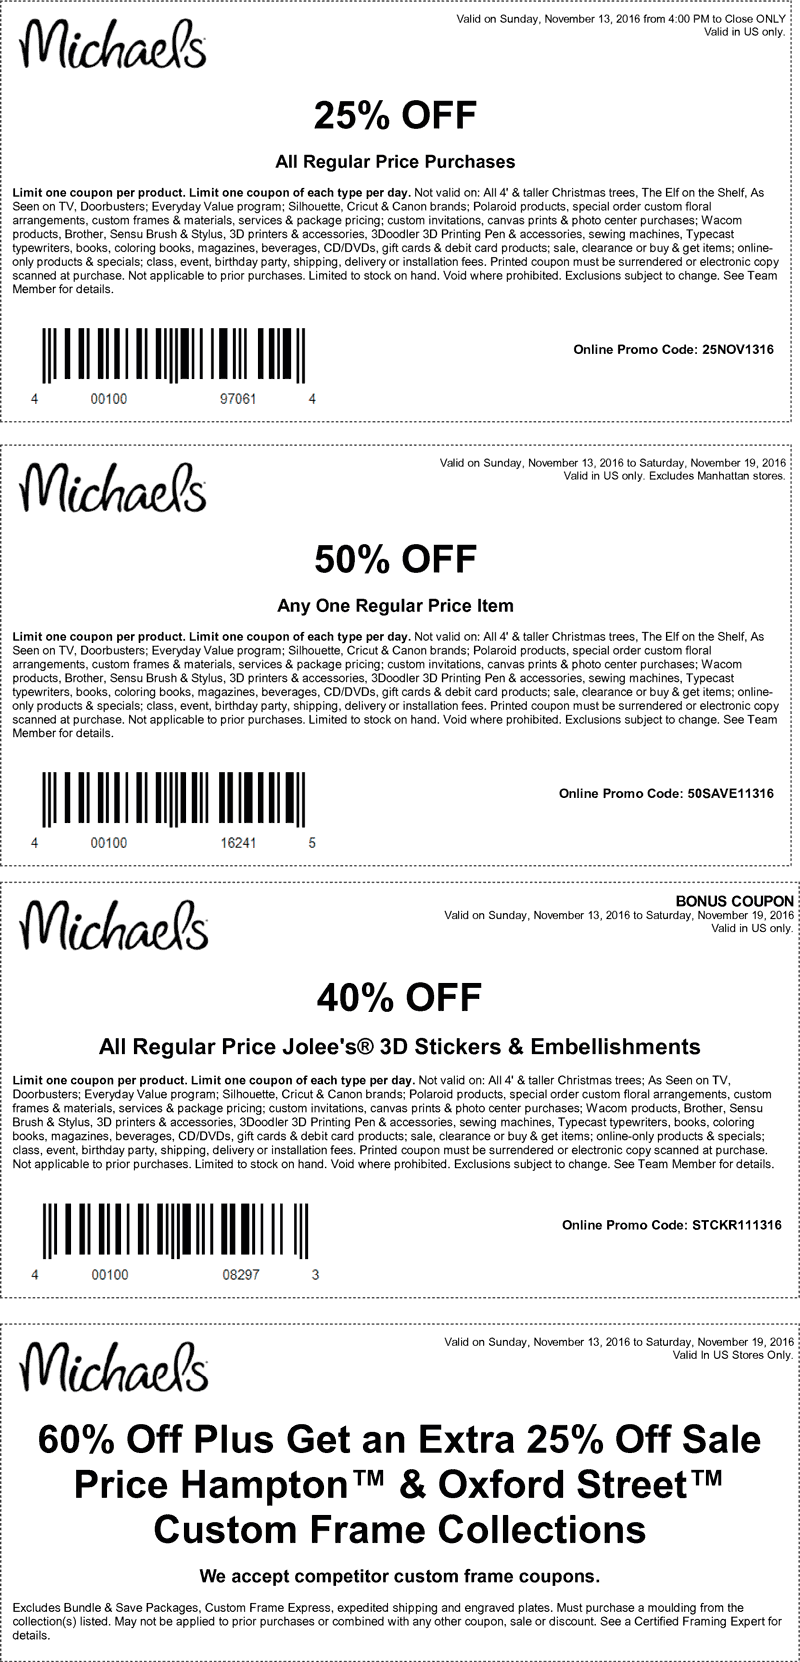 Michaels Coupon December 2018 50% off a single item & more at Michaels, or online via promo code 50SAVE11316